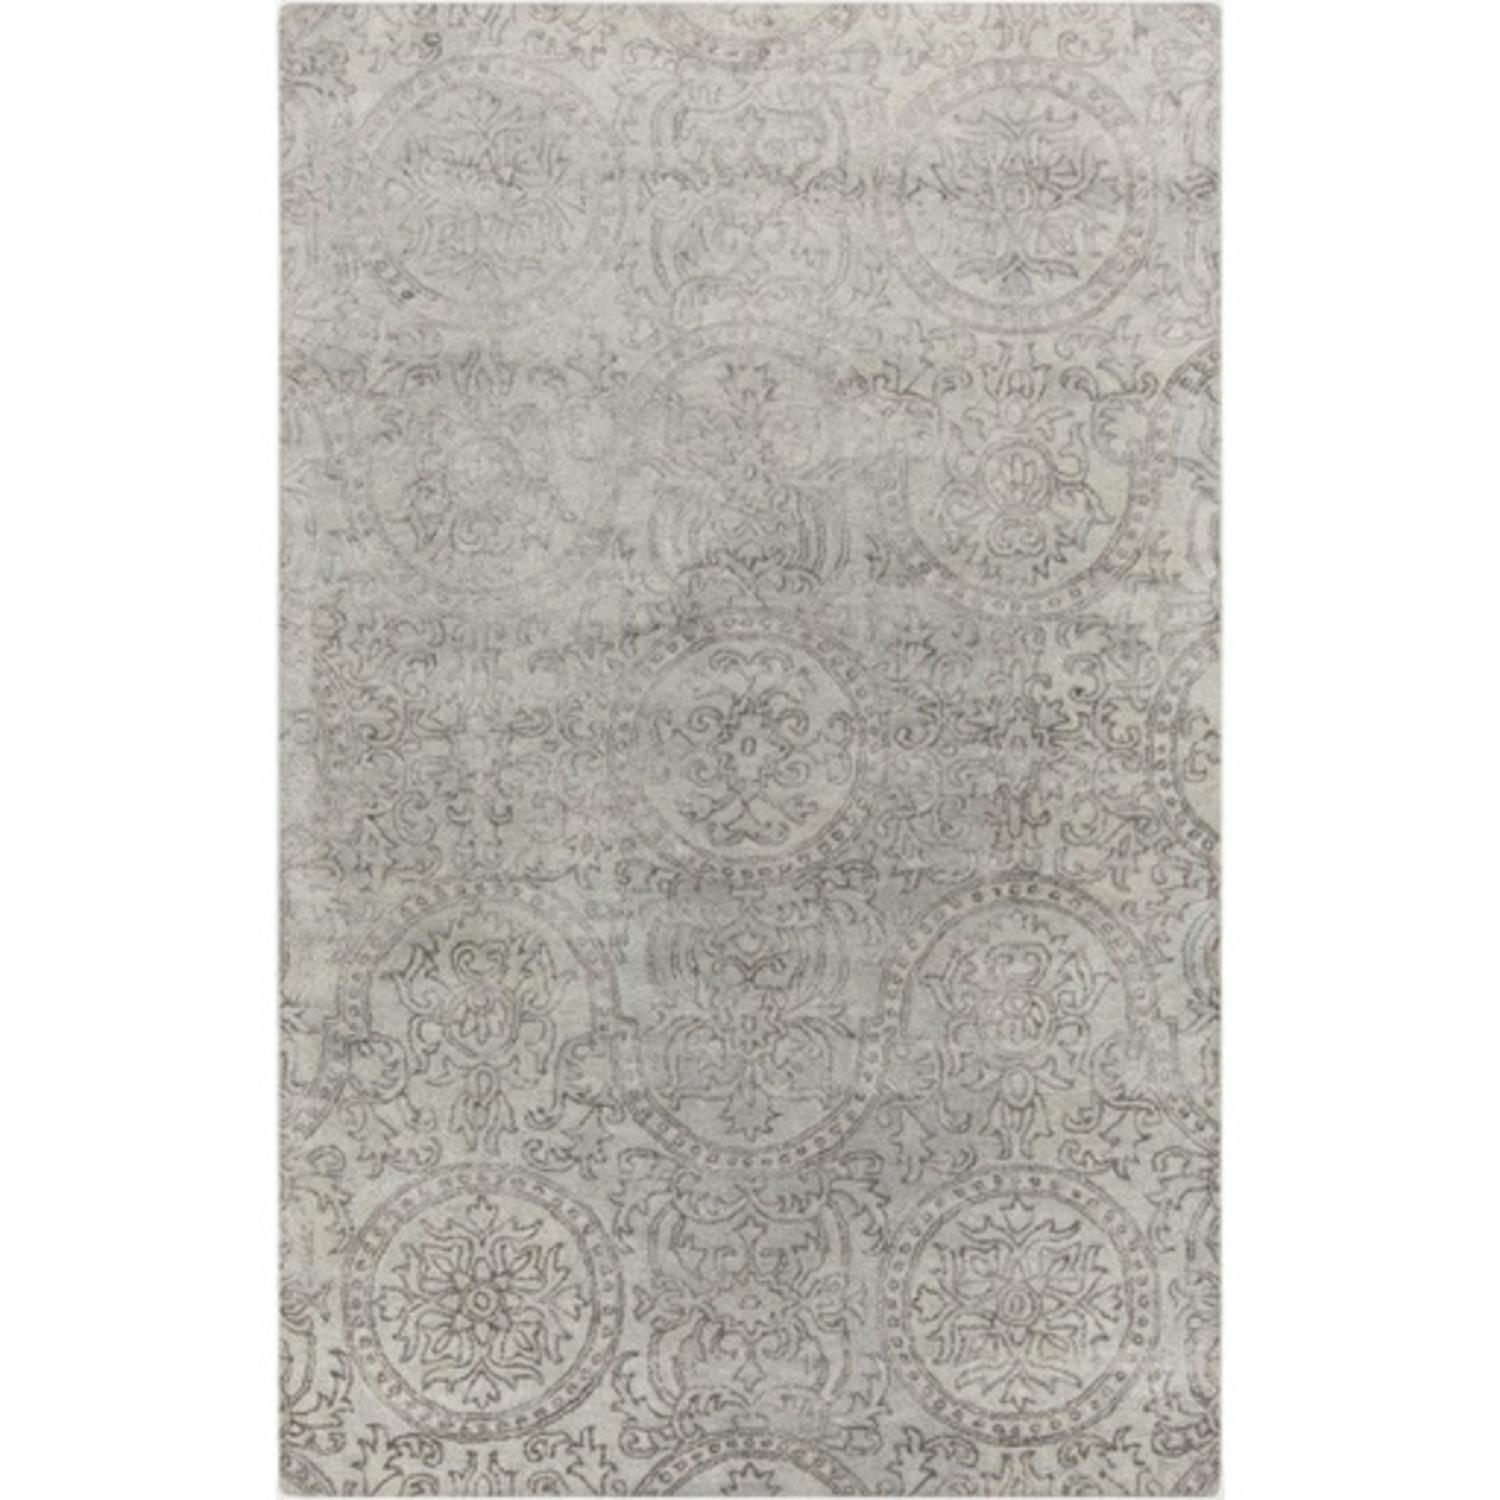 8' x 11' Turkish Marvels Gray and Light Gray Hand Tuffed Area Throw Rug